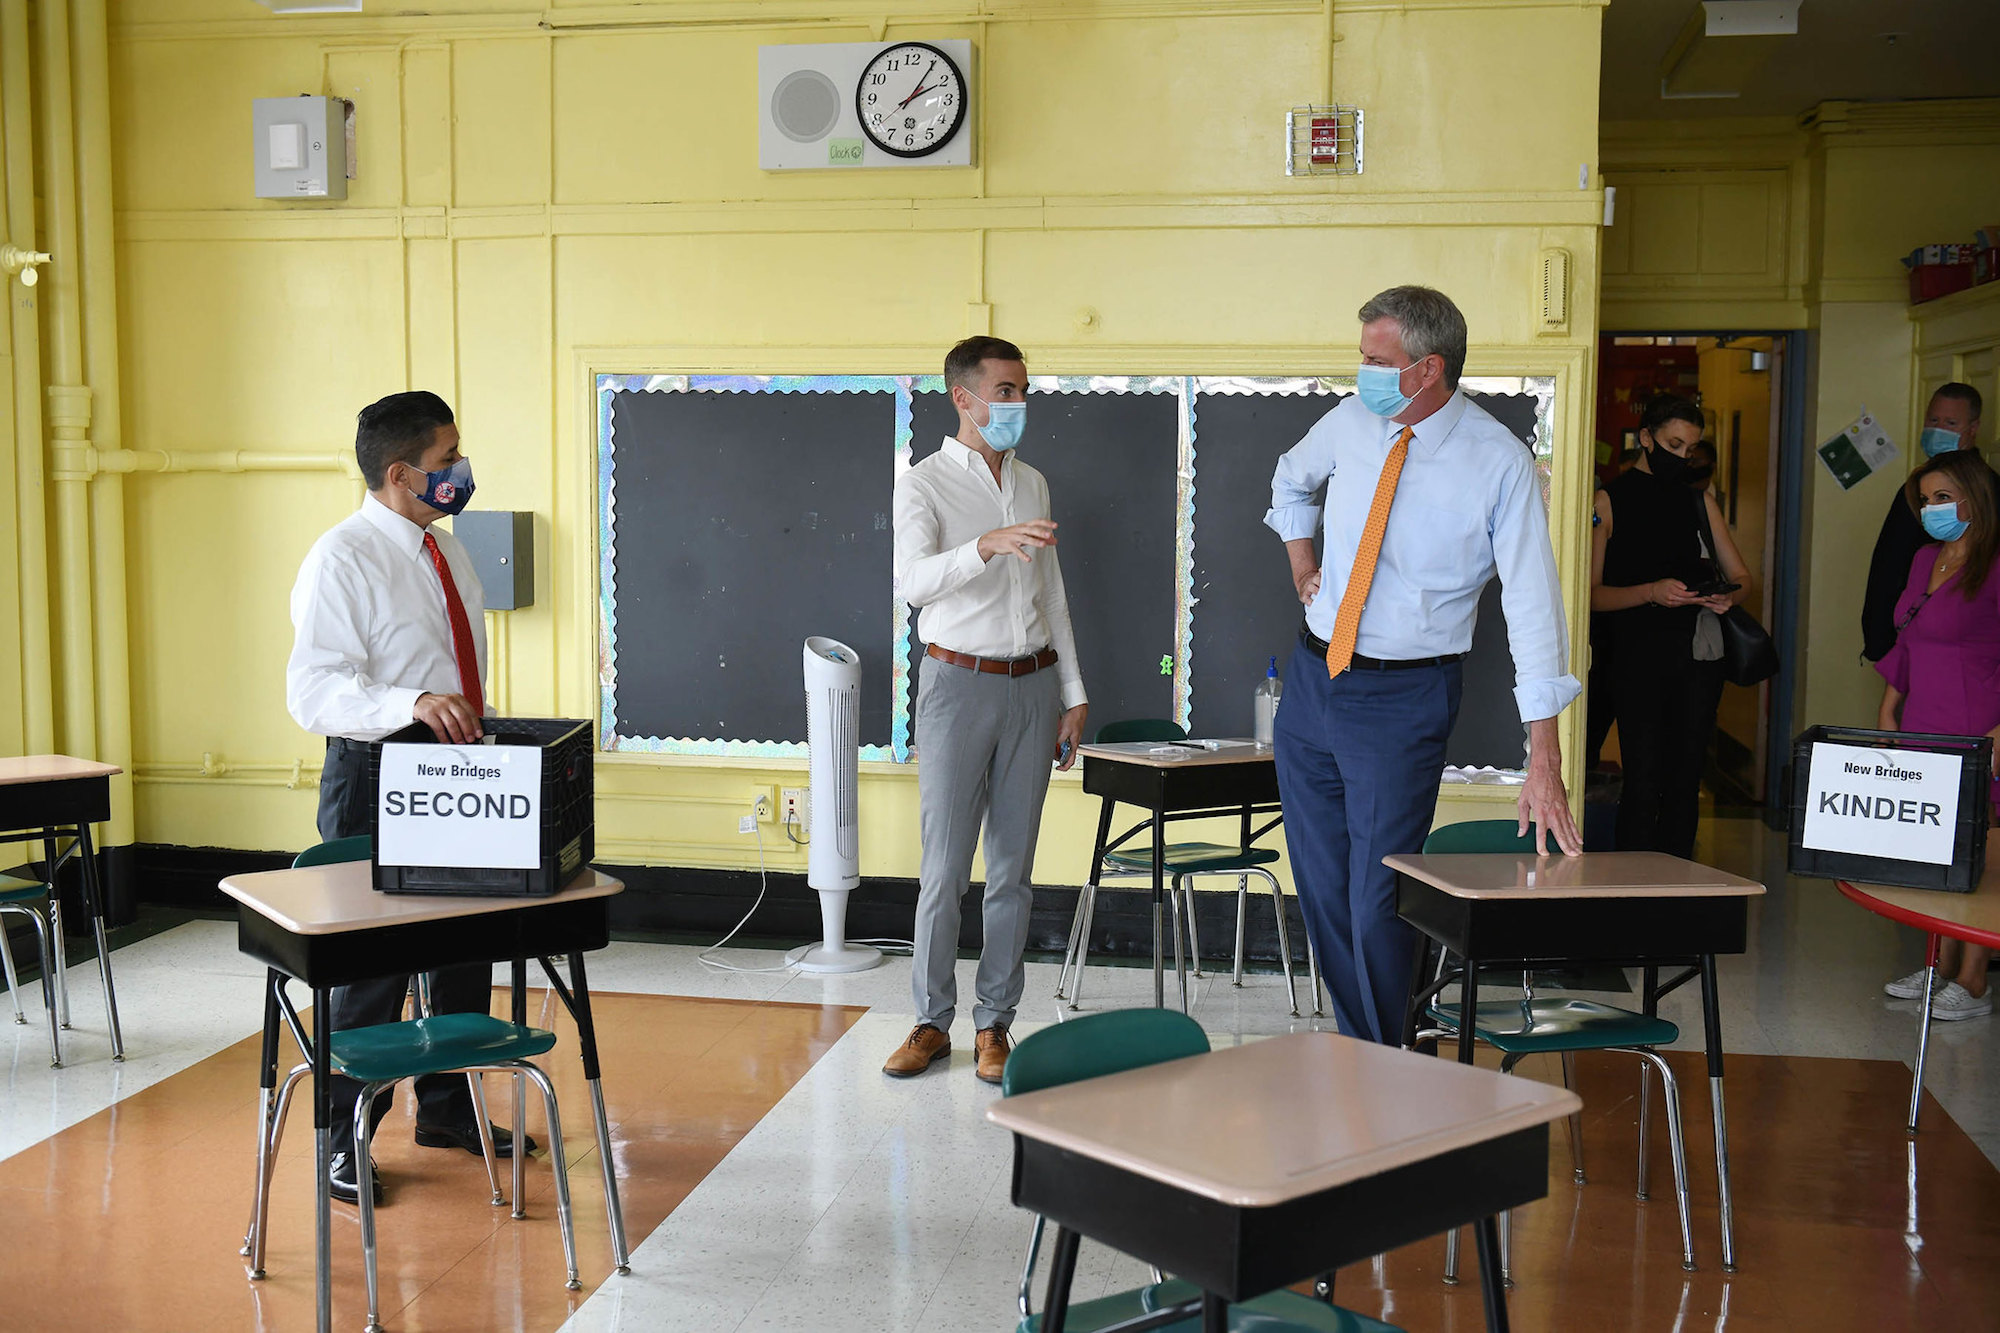 NYC students, teachers back in class 2 weeks before testing starts